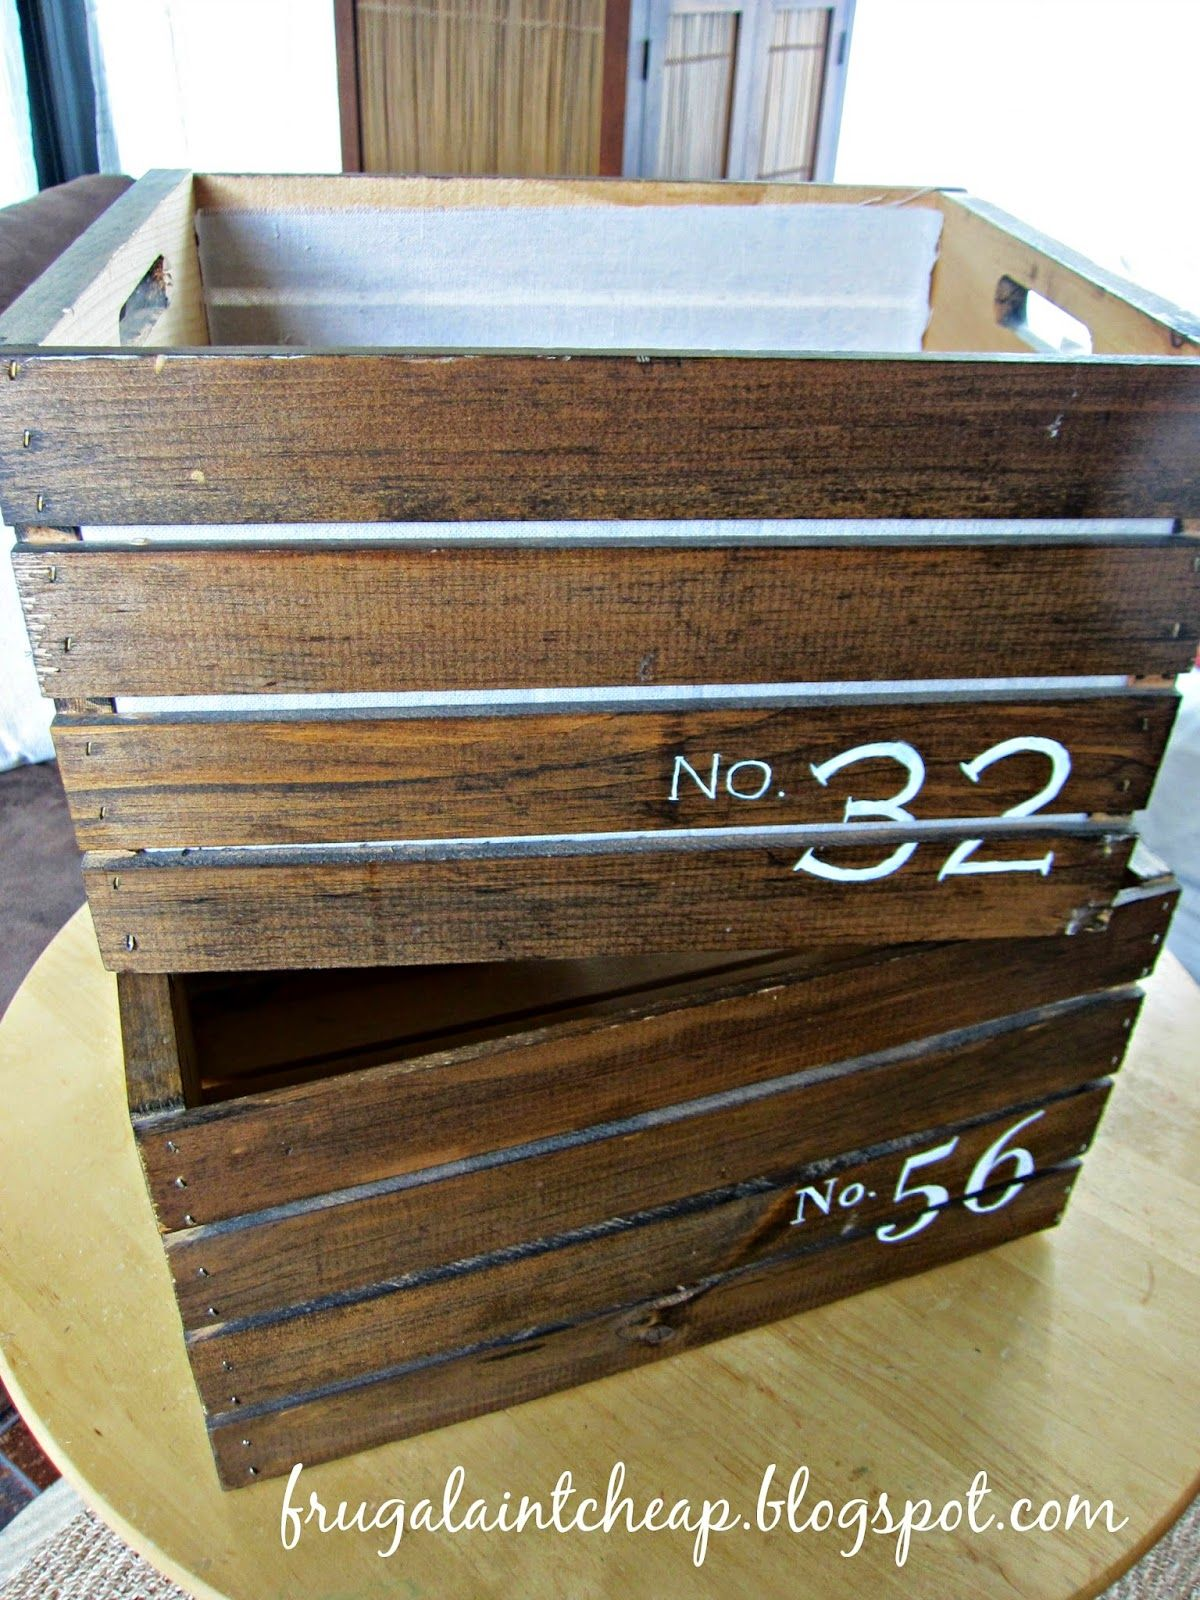 Cheap Wooden Crates Frugal Ain 39t Cheap Fabric Lined And Painted Pine Wooden